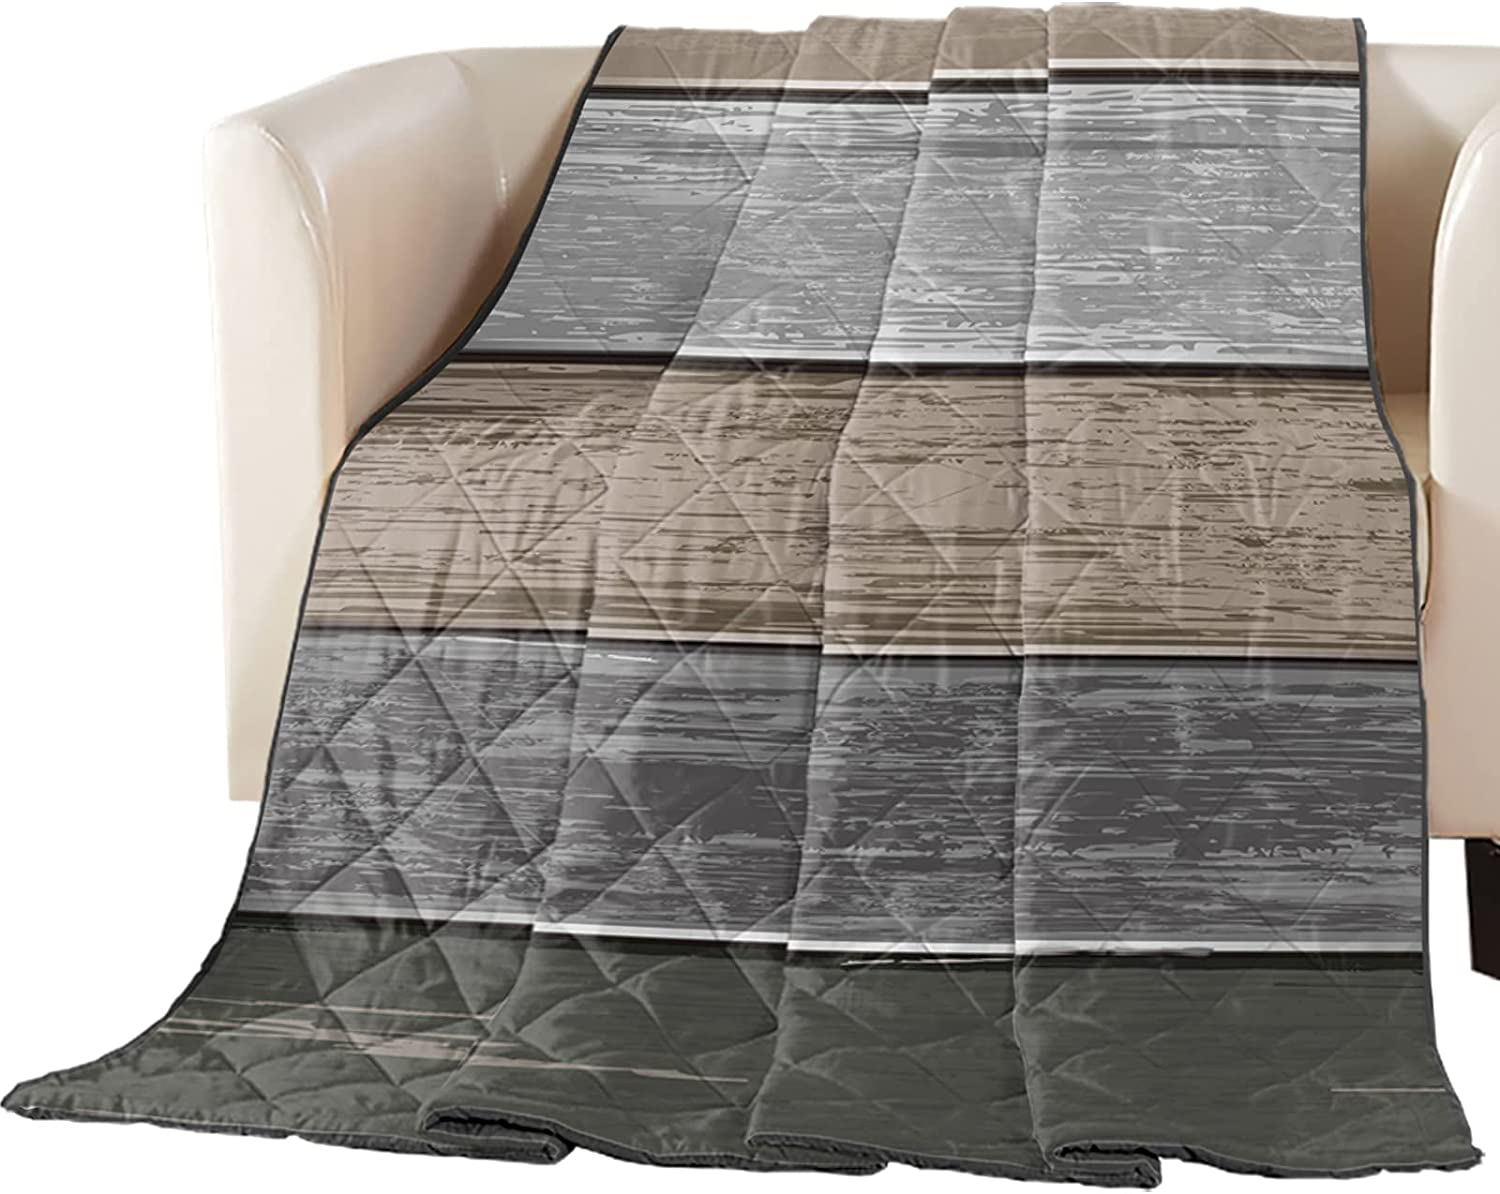 Arts Print Twin Size Quilt New arrival Bedspread Soft Throw Lightweight All Low price